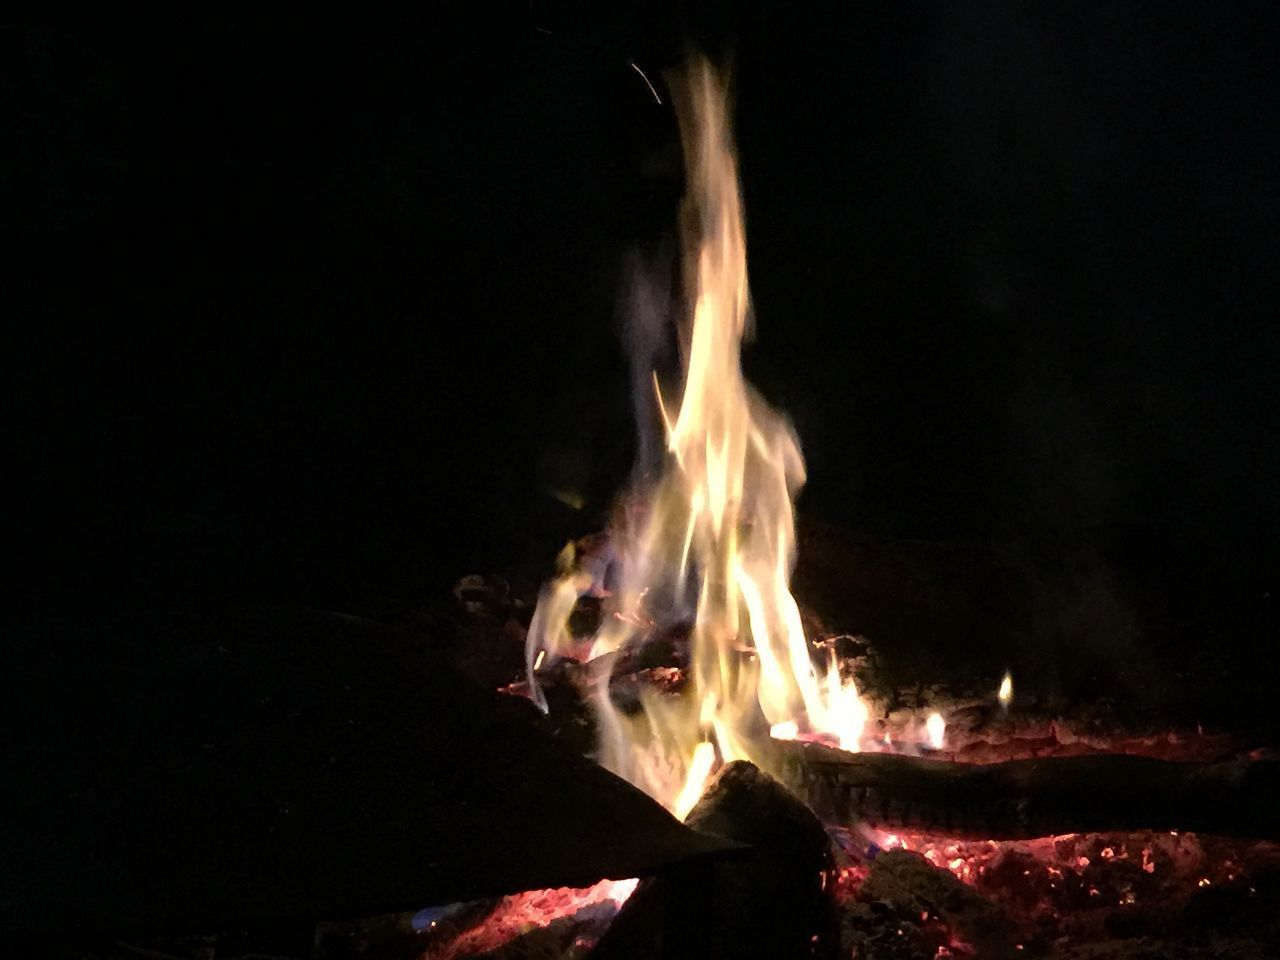 burning, flame, night, heat - temperature, bonfire, motion, no people, outdoors, close-up, nature